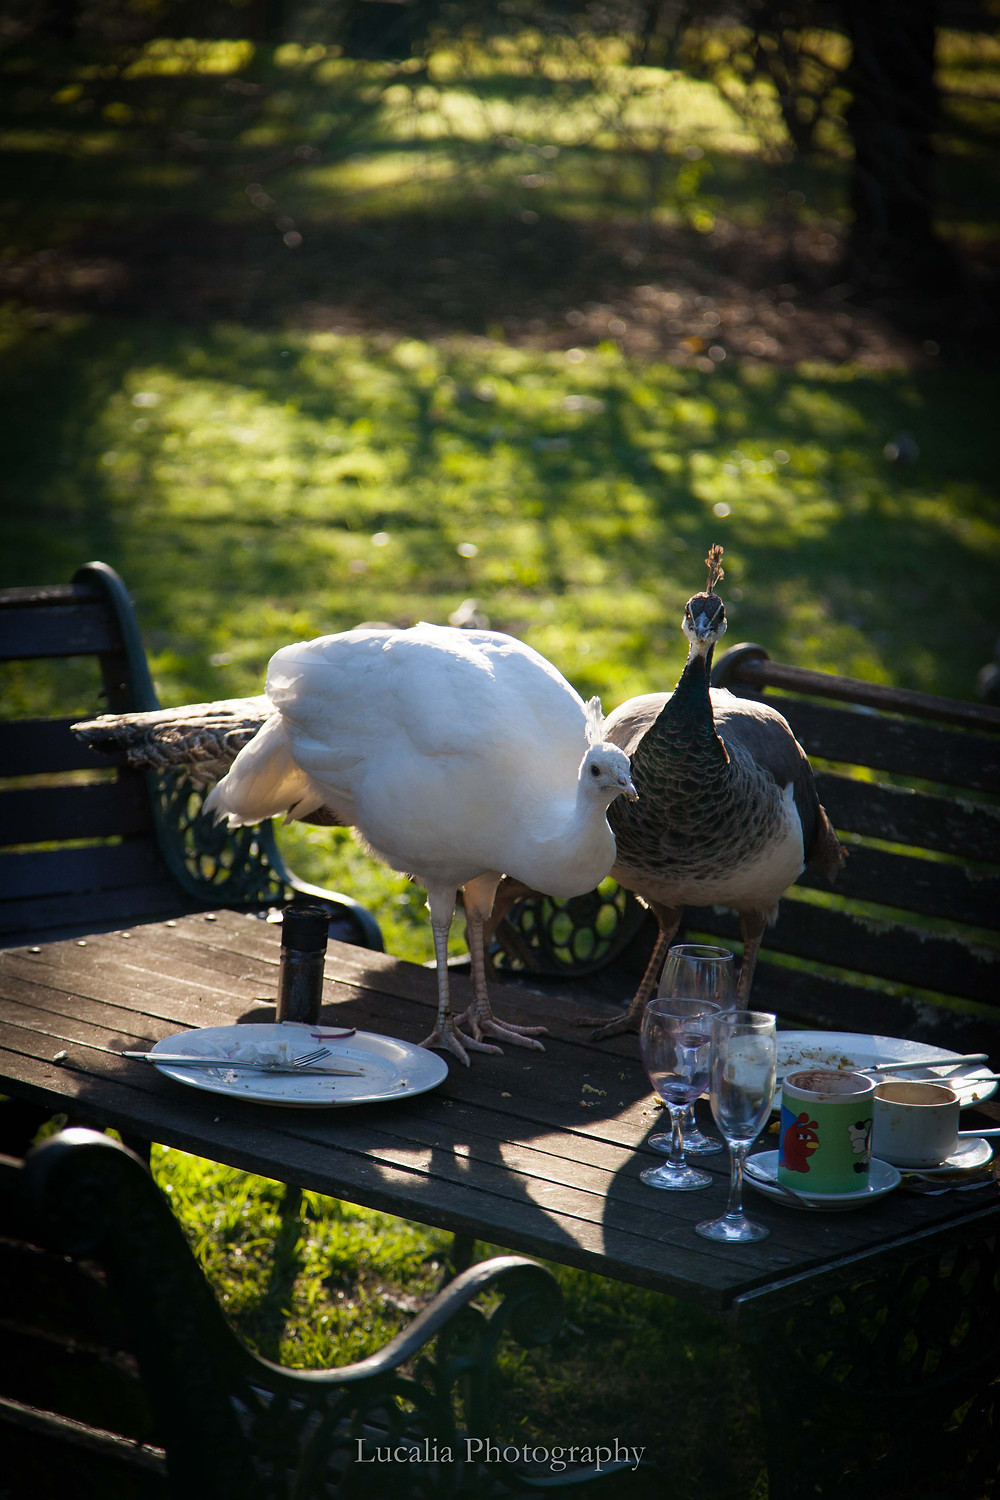 peacocks on a table at Settlers Arms Inn, St. Albans NSW, Lucalia Photography